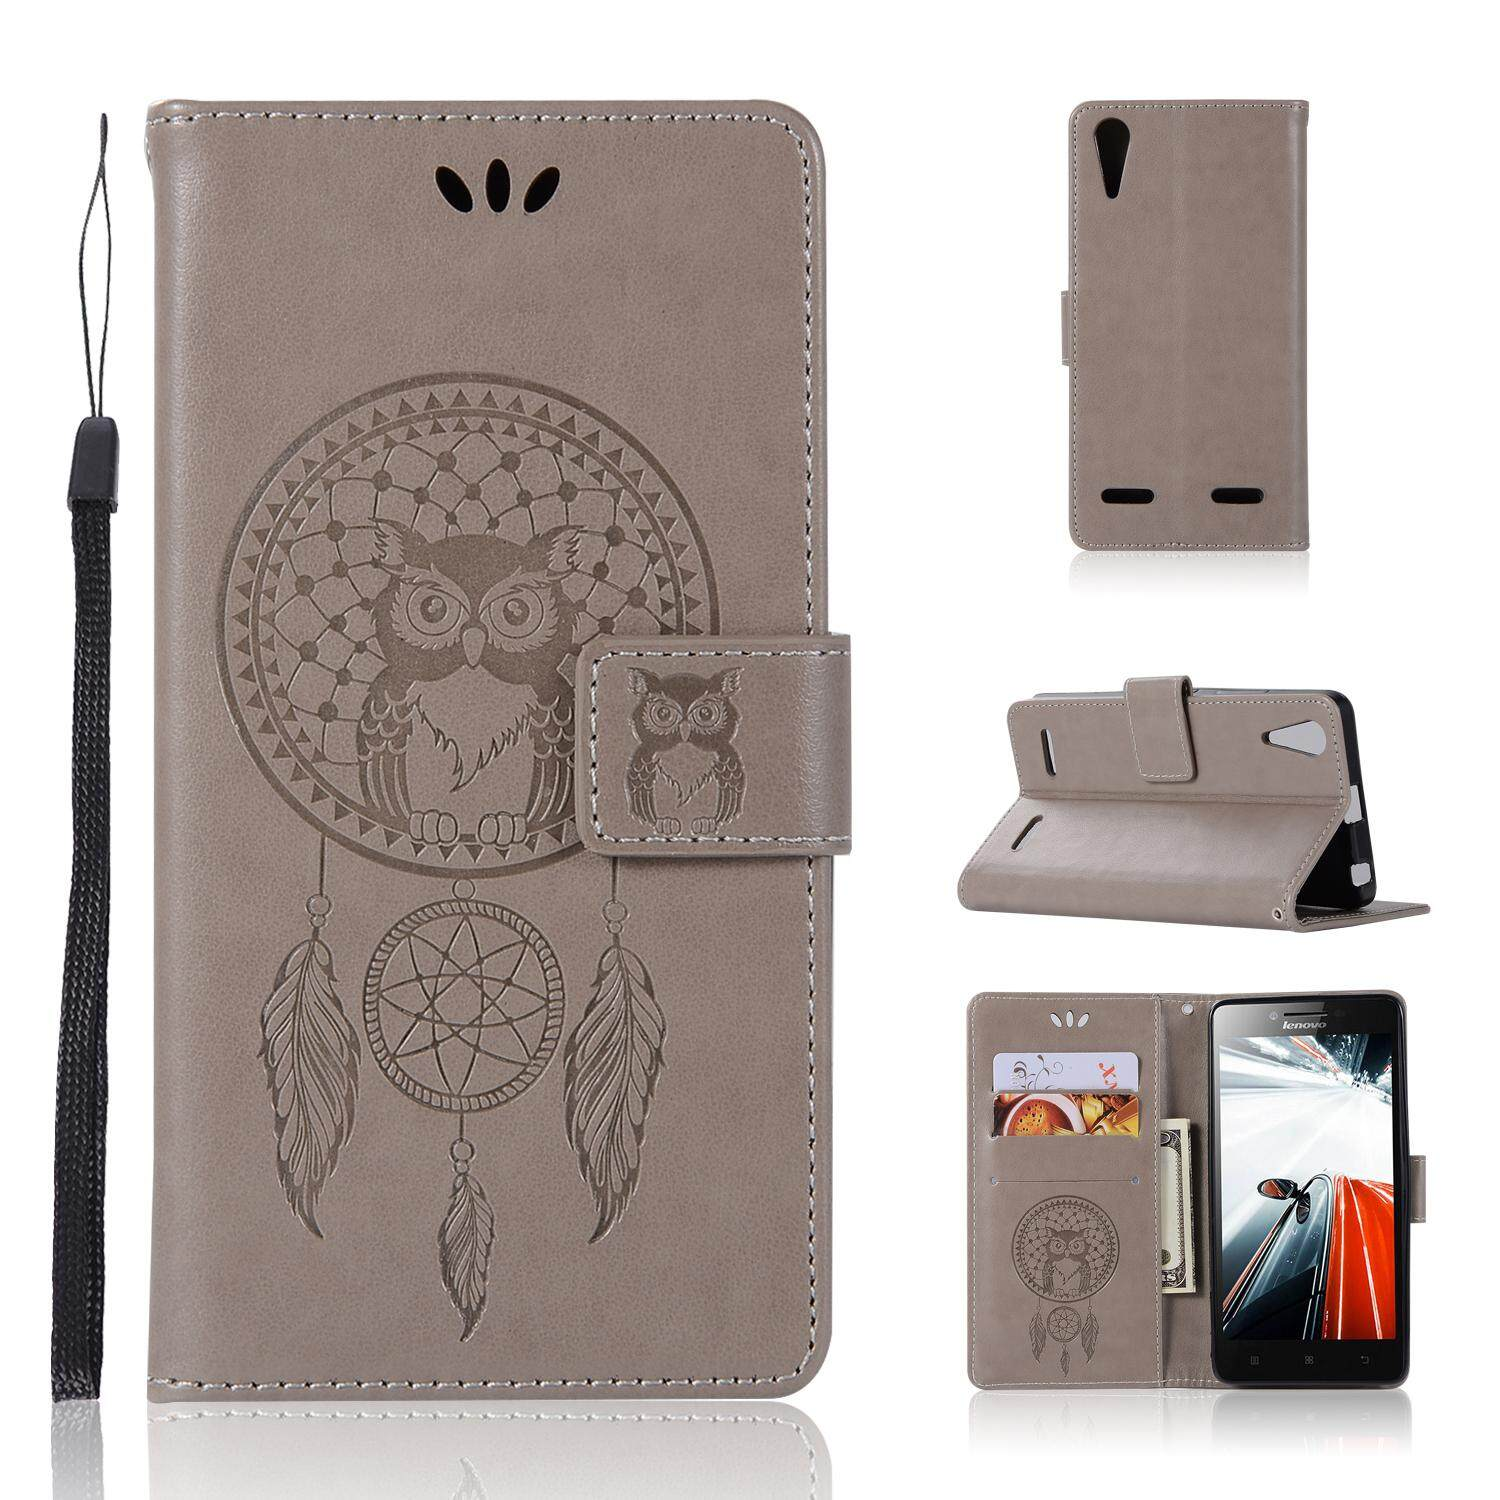 Luxury For Lenovo K3 / A6000 Casing , 3d Owl Embossing Leather Folio Flip Case Cover By Life Goes On.